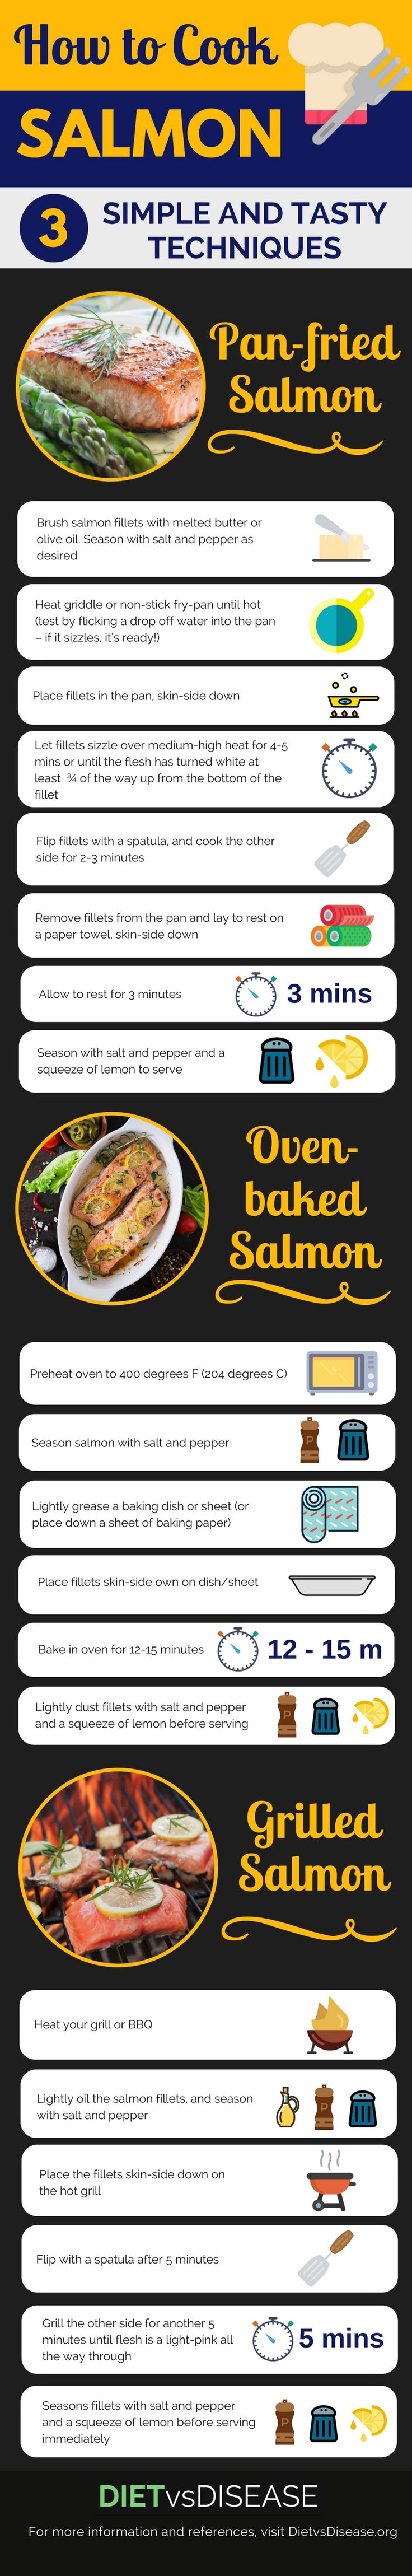 21b7277b60b2e699ce30da2b29758467 Salmon is a healthy, nutritious and flavourful source of protein. This article w...